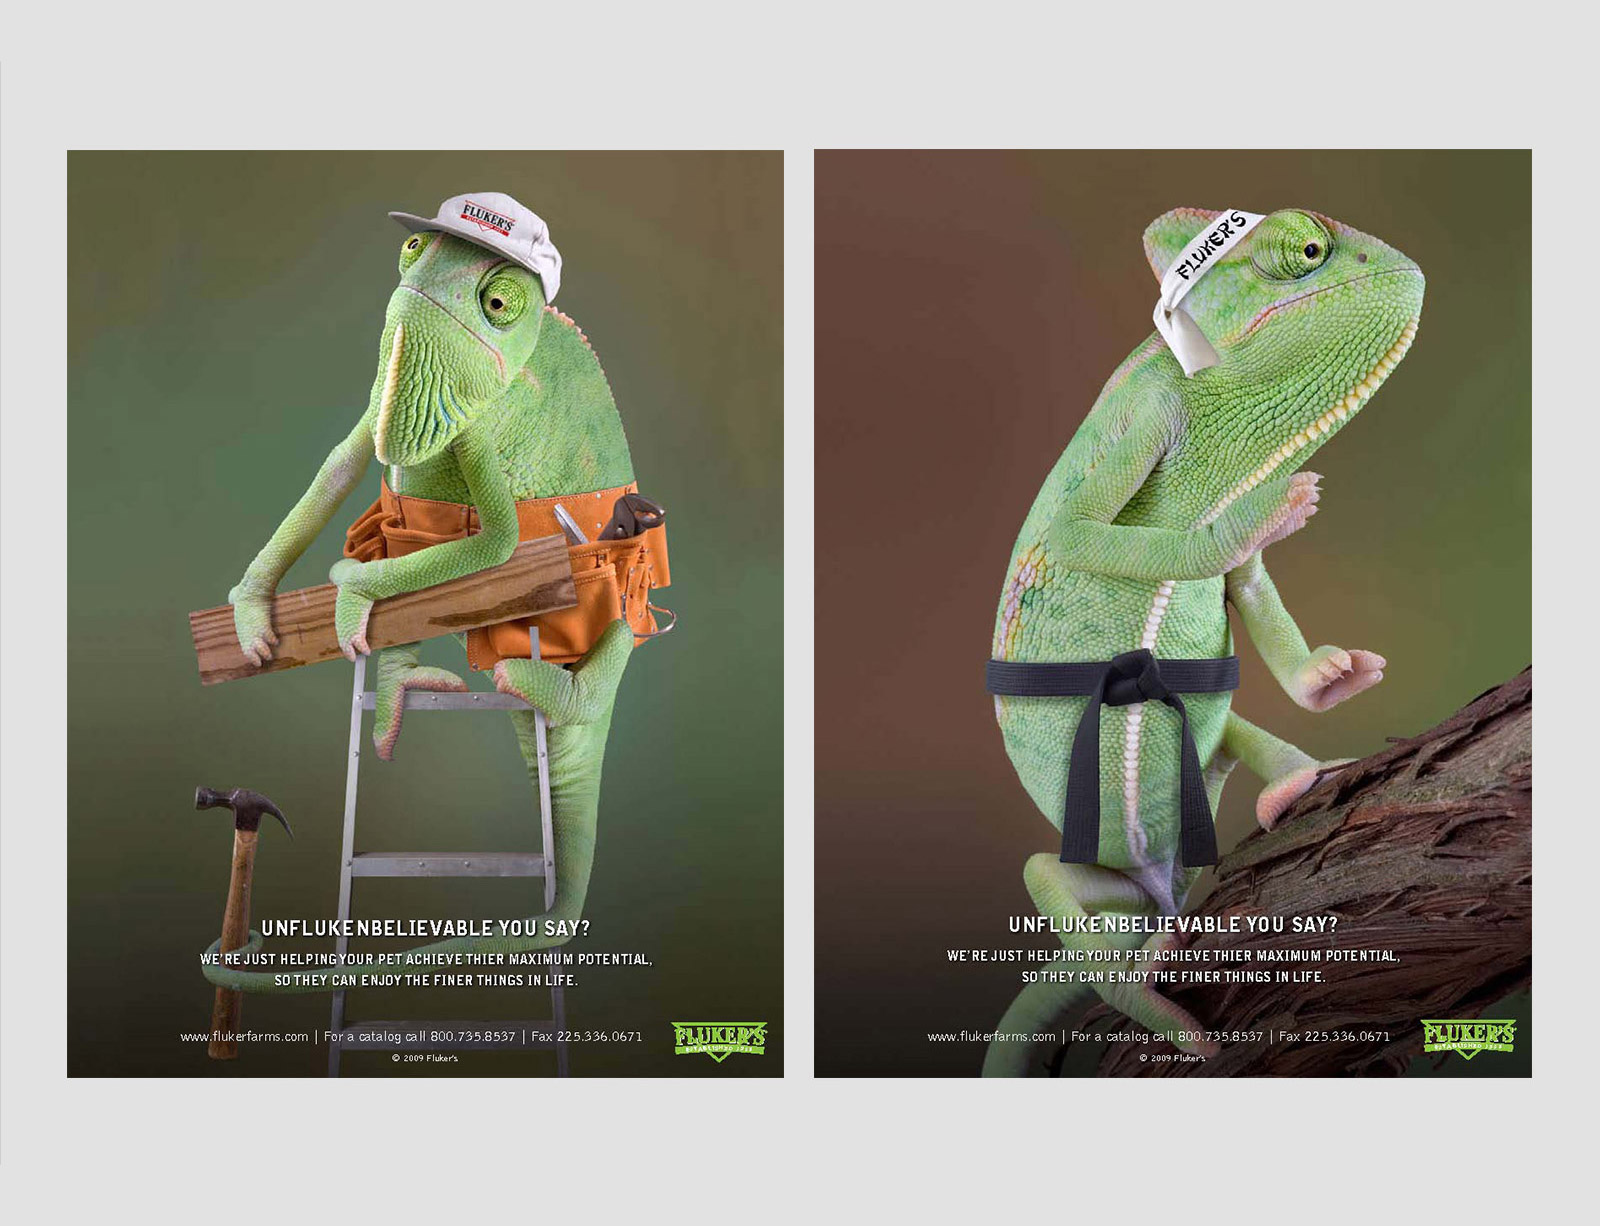 PRINT_Flukers-Panter-Chameleon-Ads2.jpg